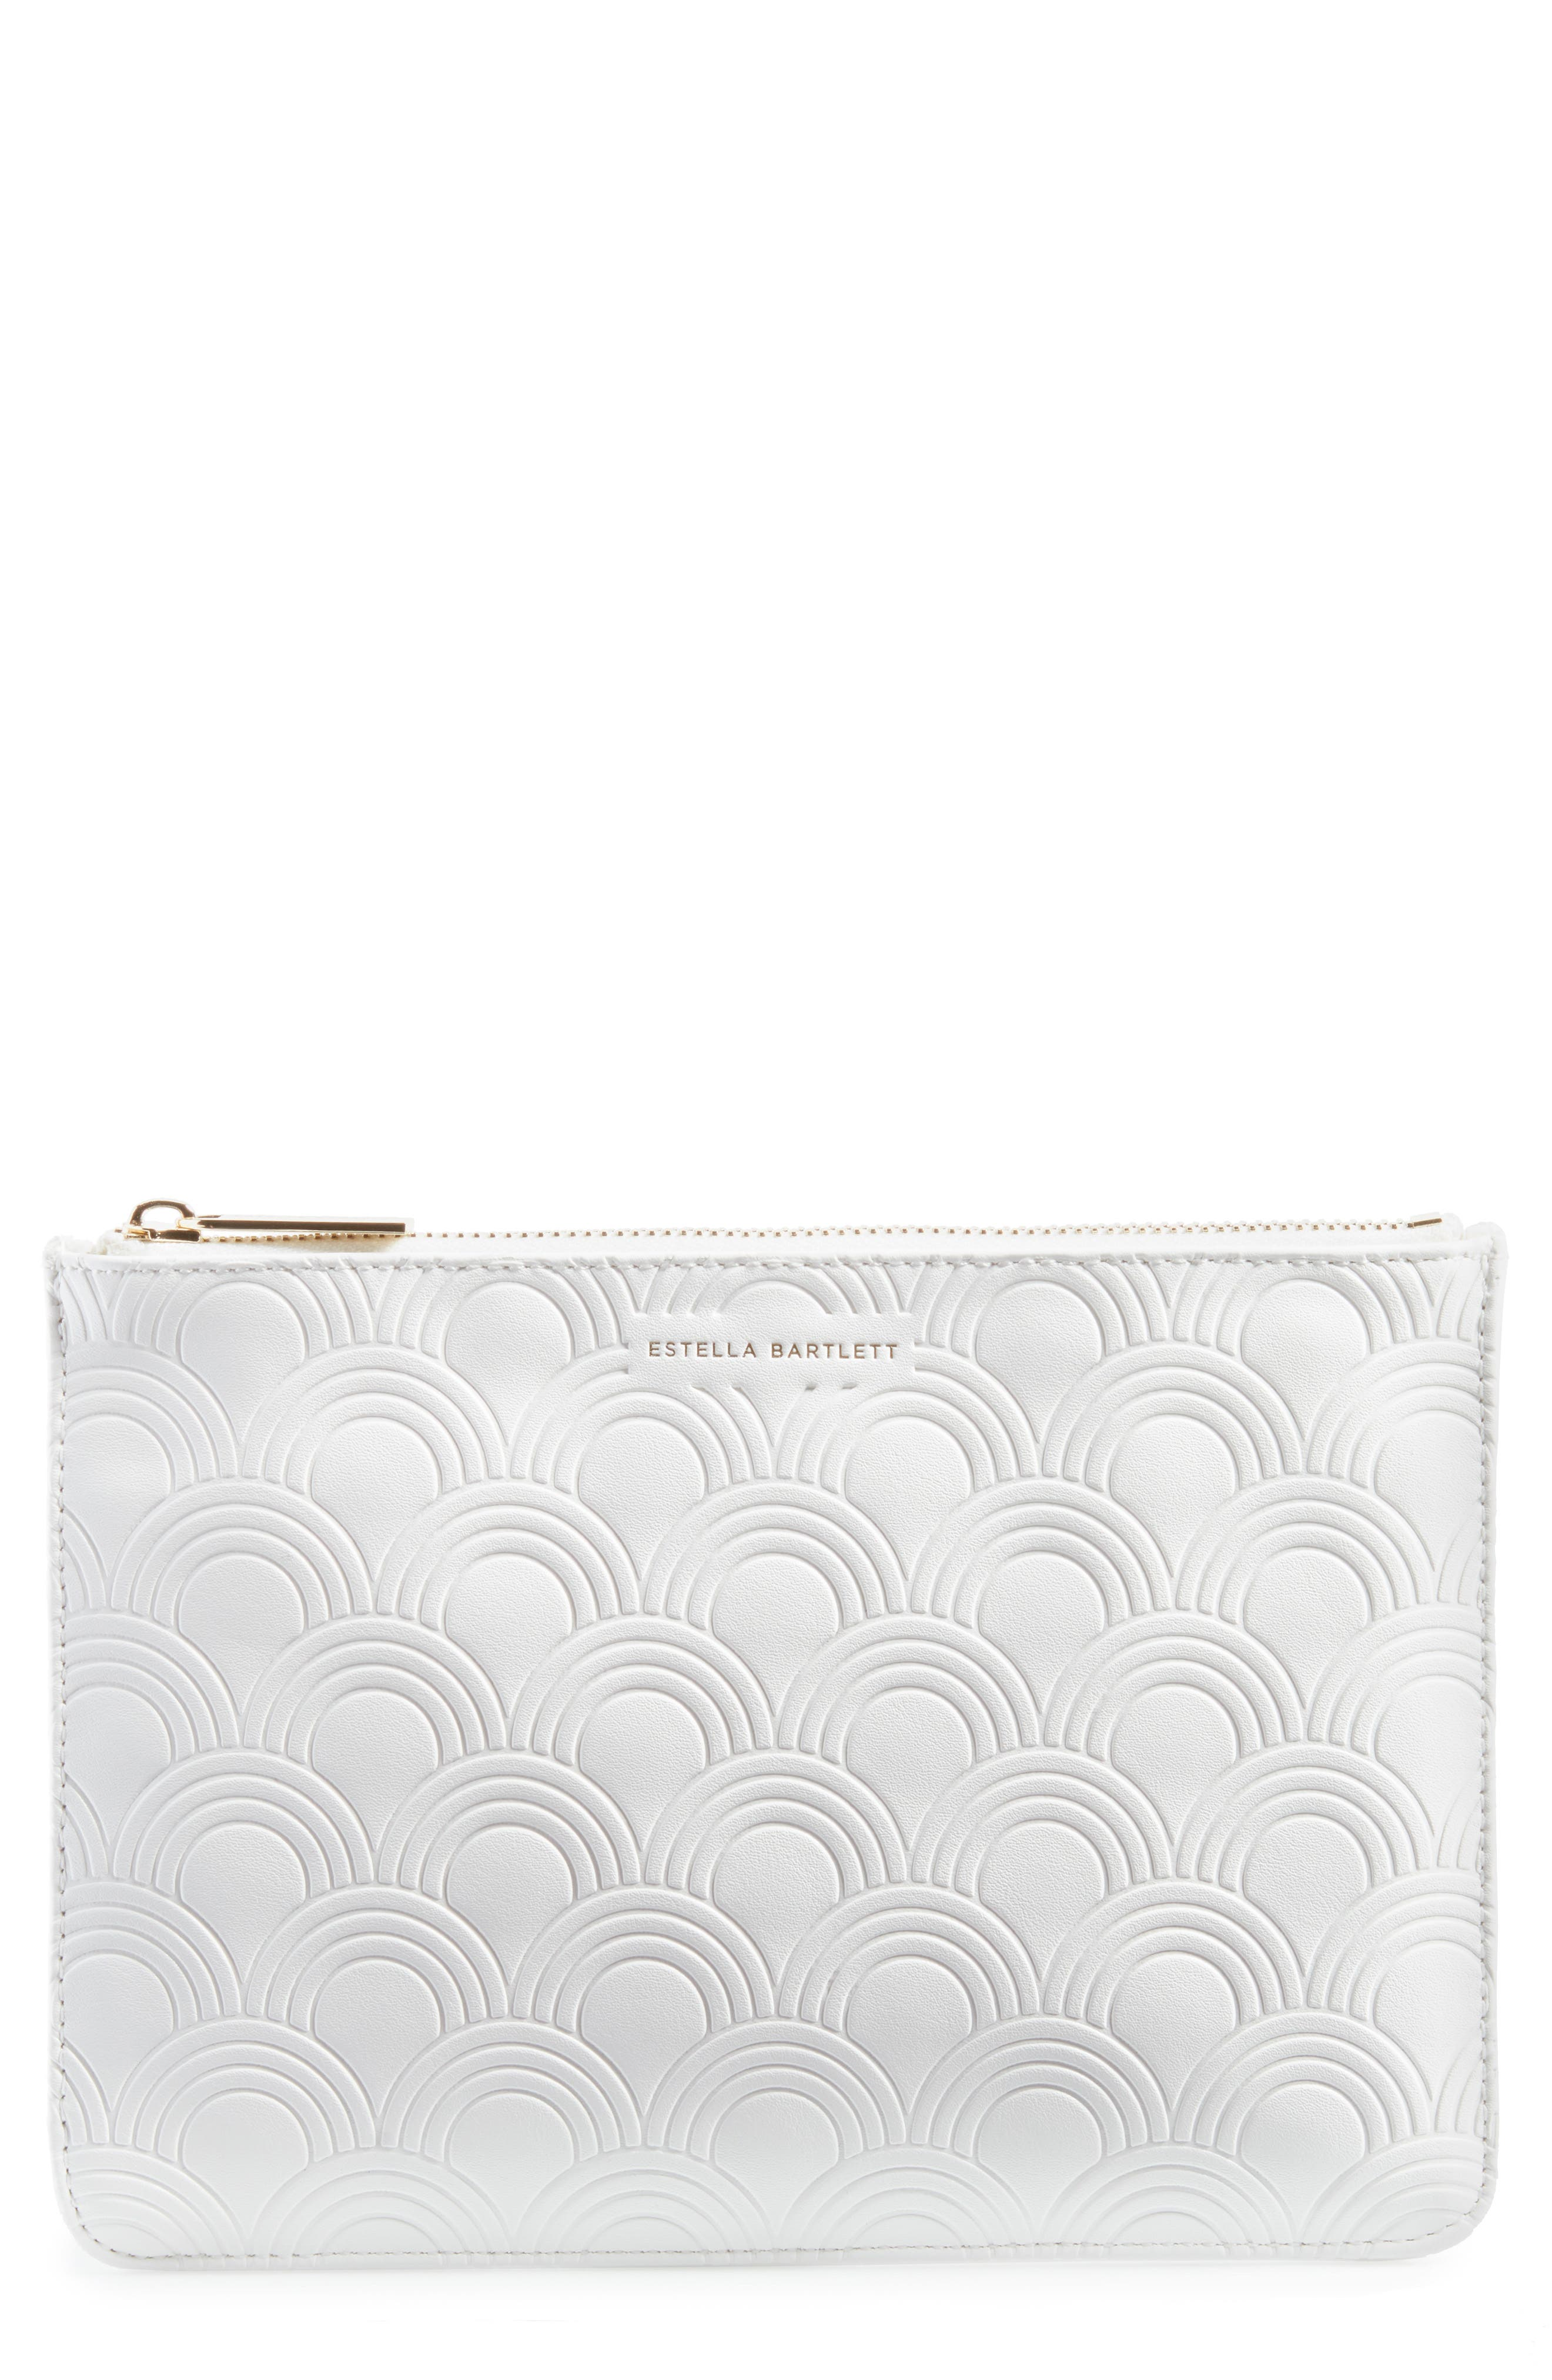 Estella Bartlett Medium Embossed Faux Leather Pouch